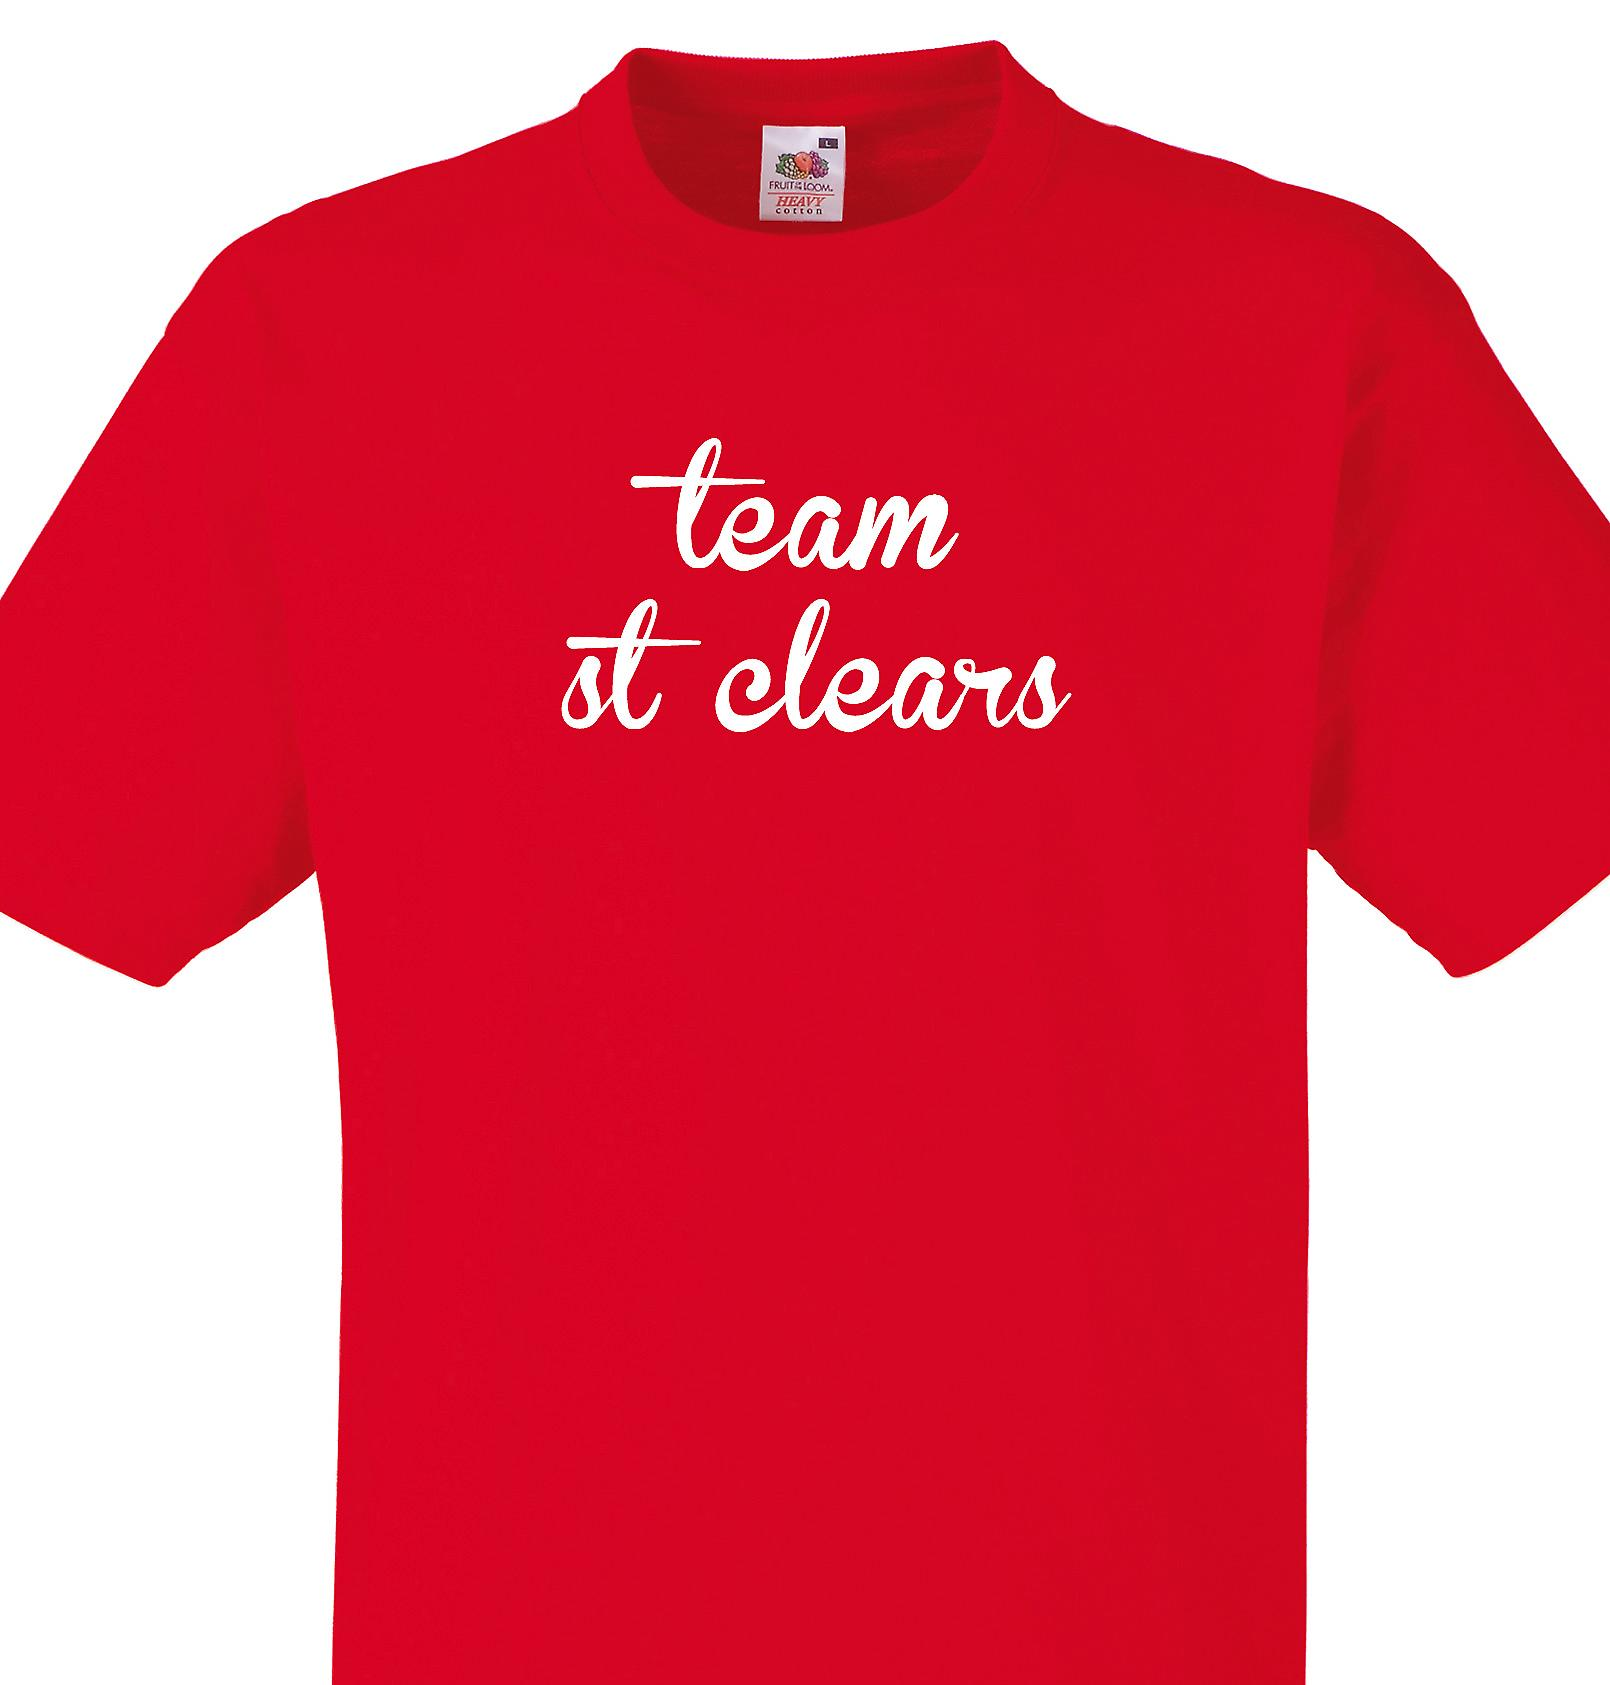 Team St clears Red T shirt